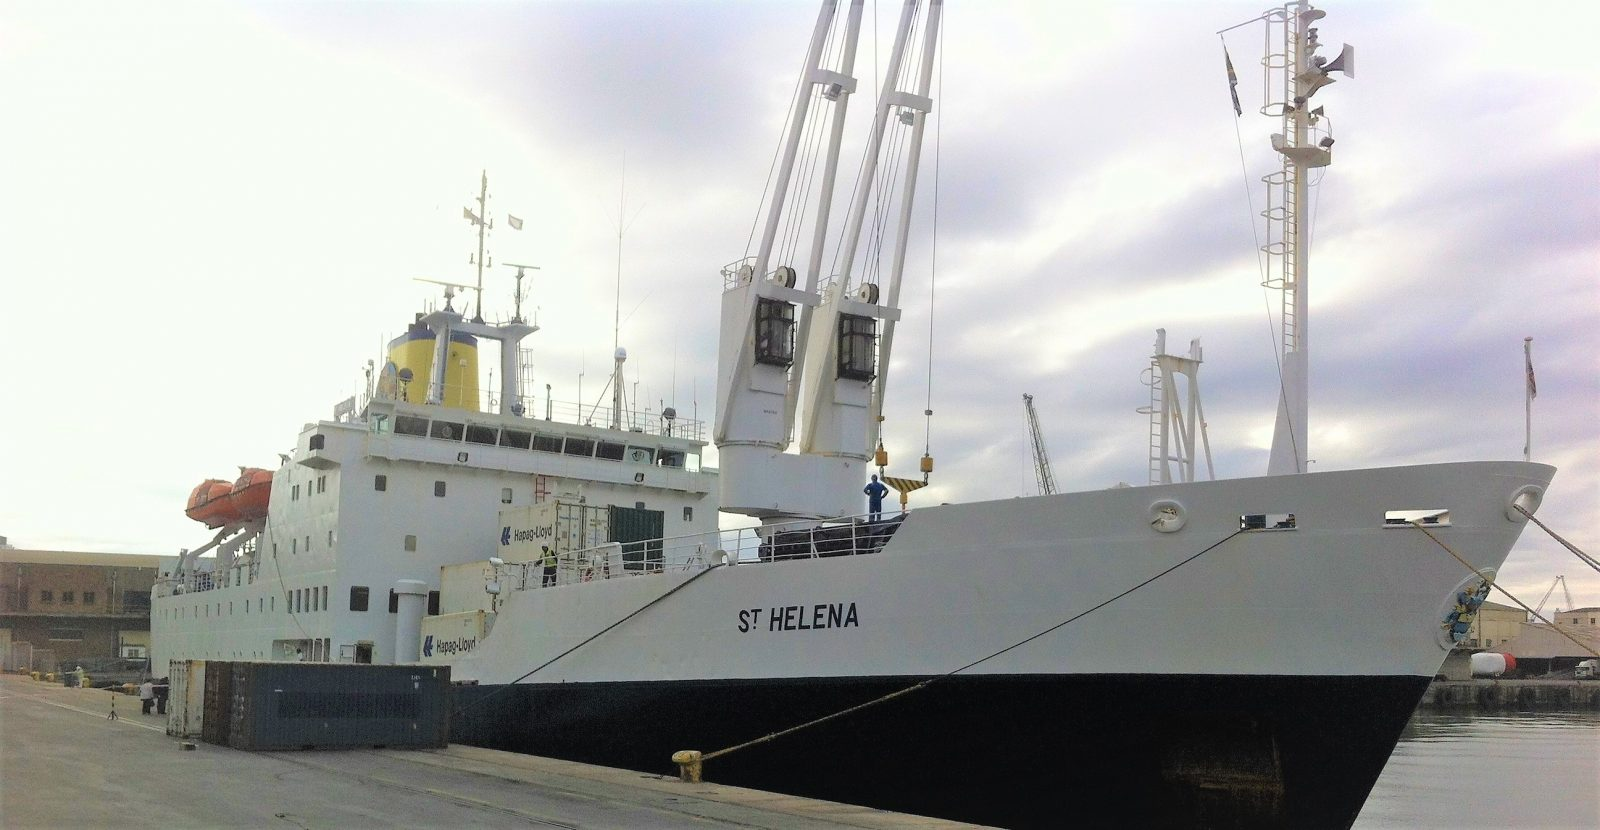 The RMS St. Helena